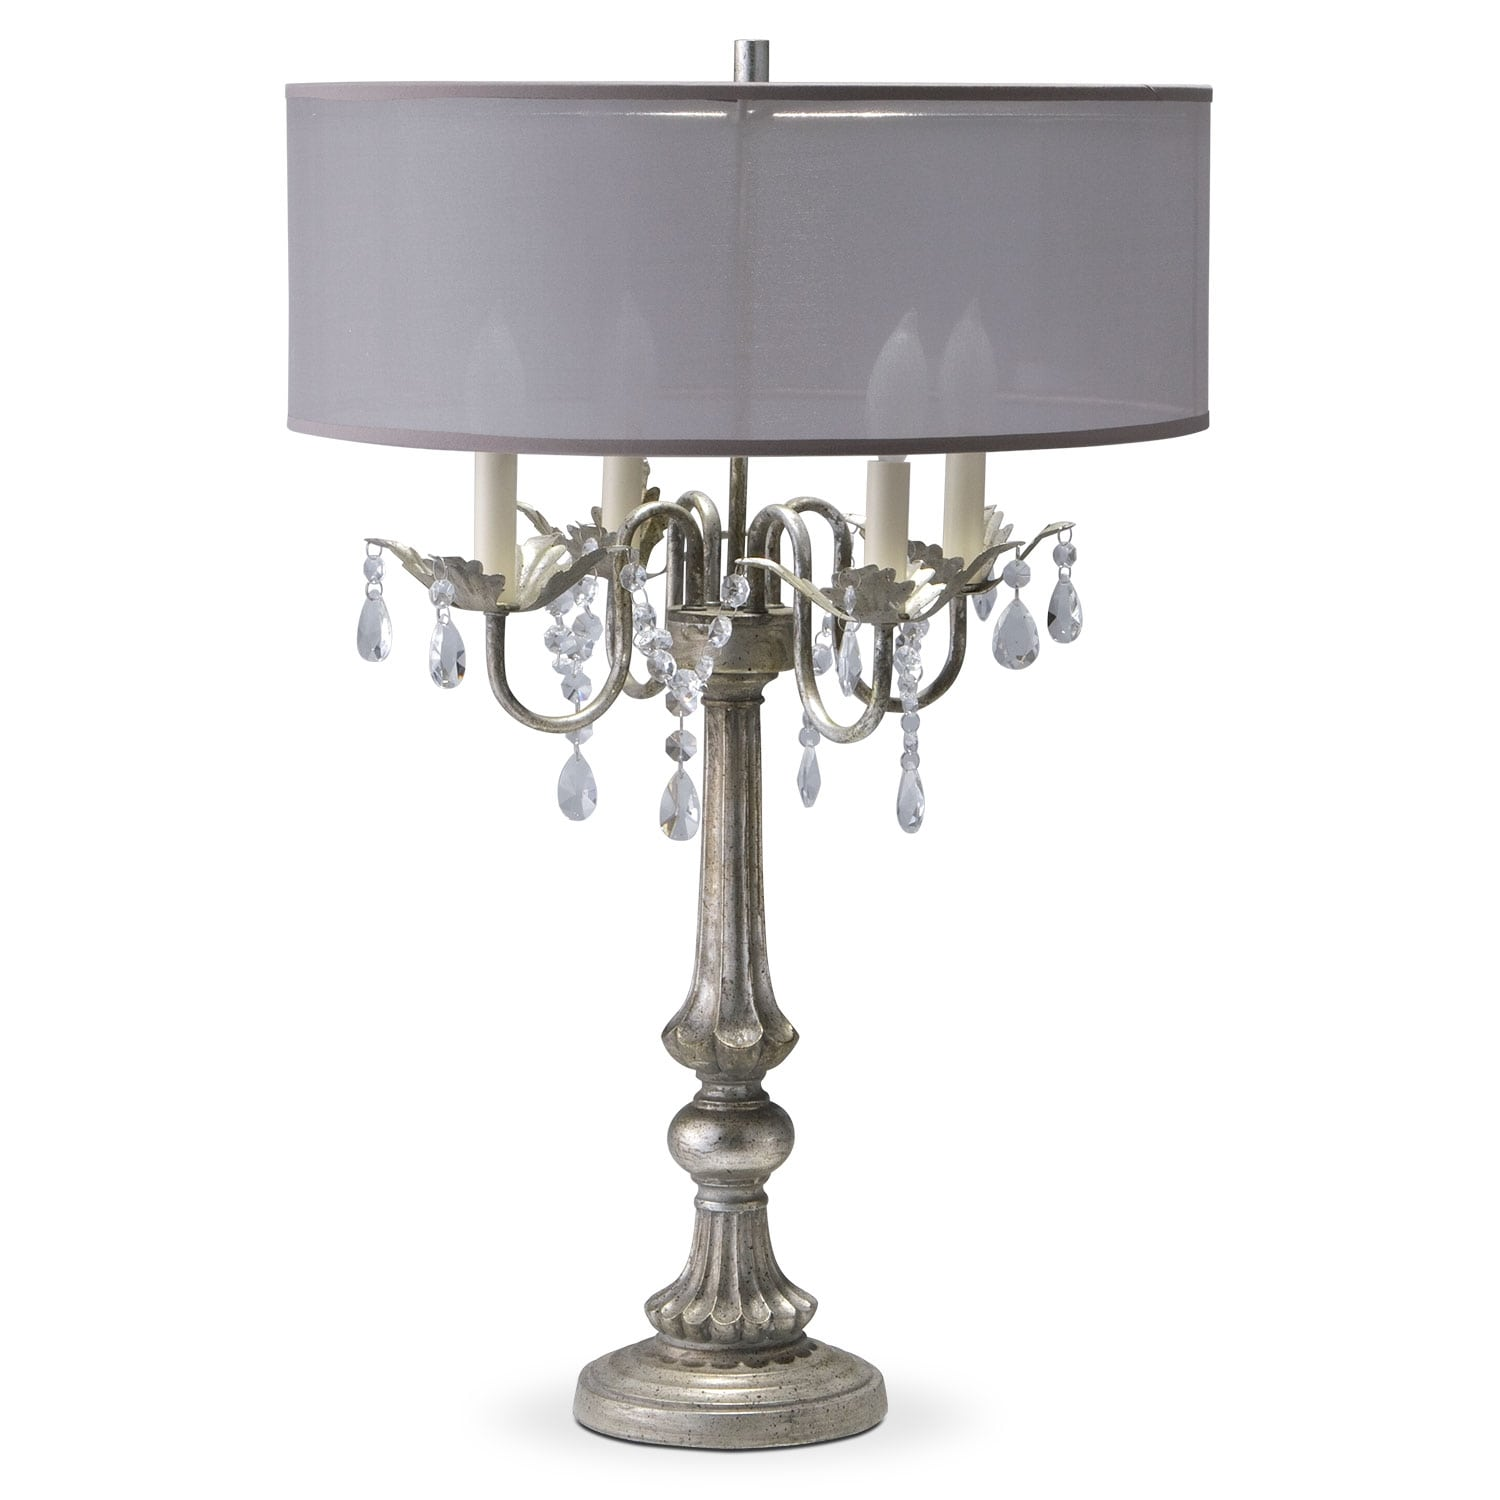 Home Accessories - Chandelier Table Lamp